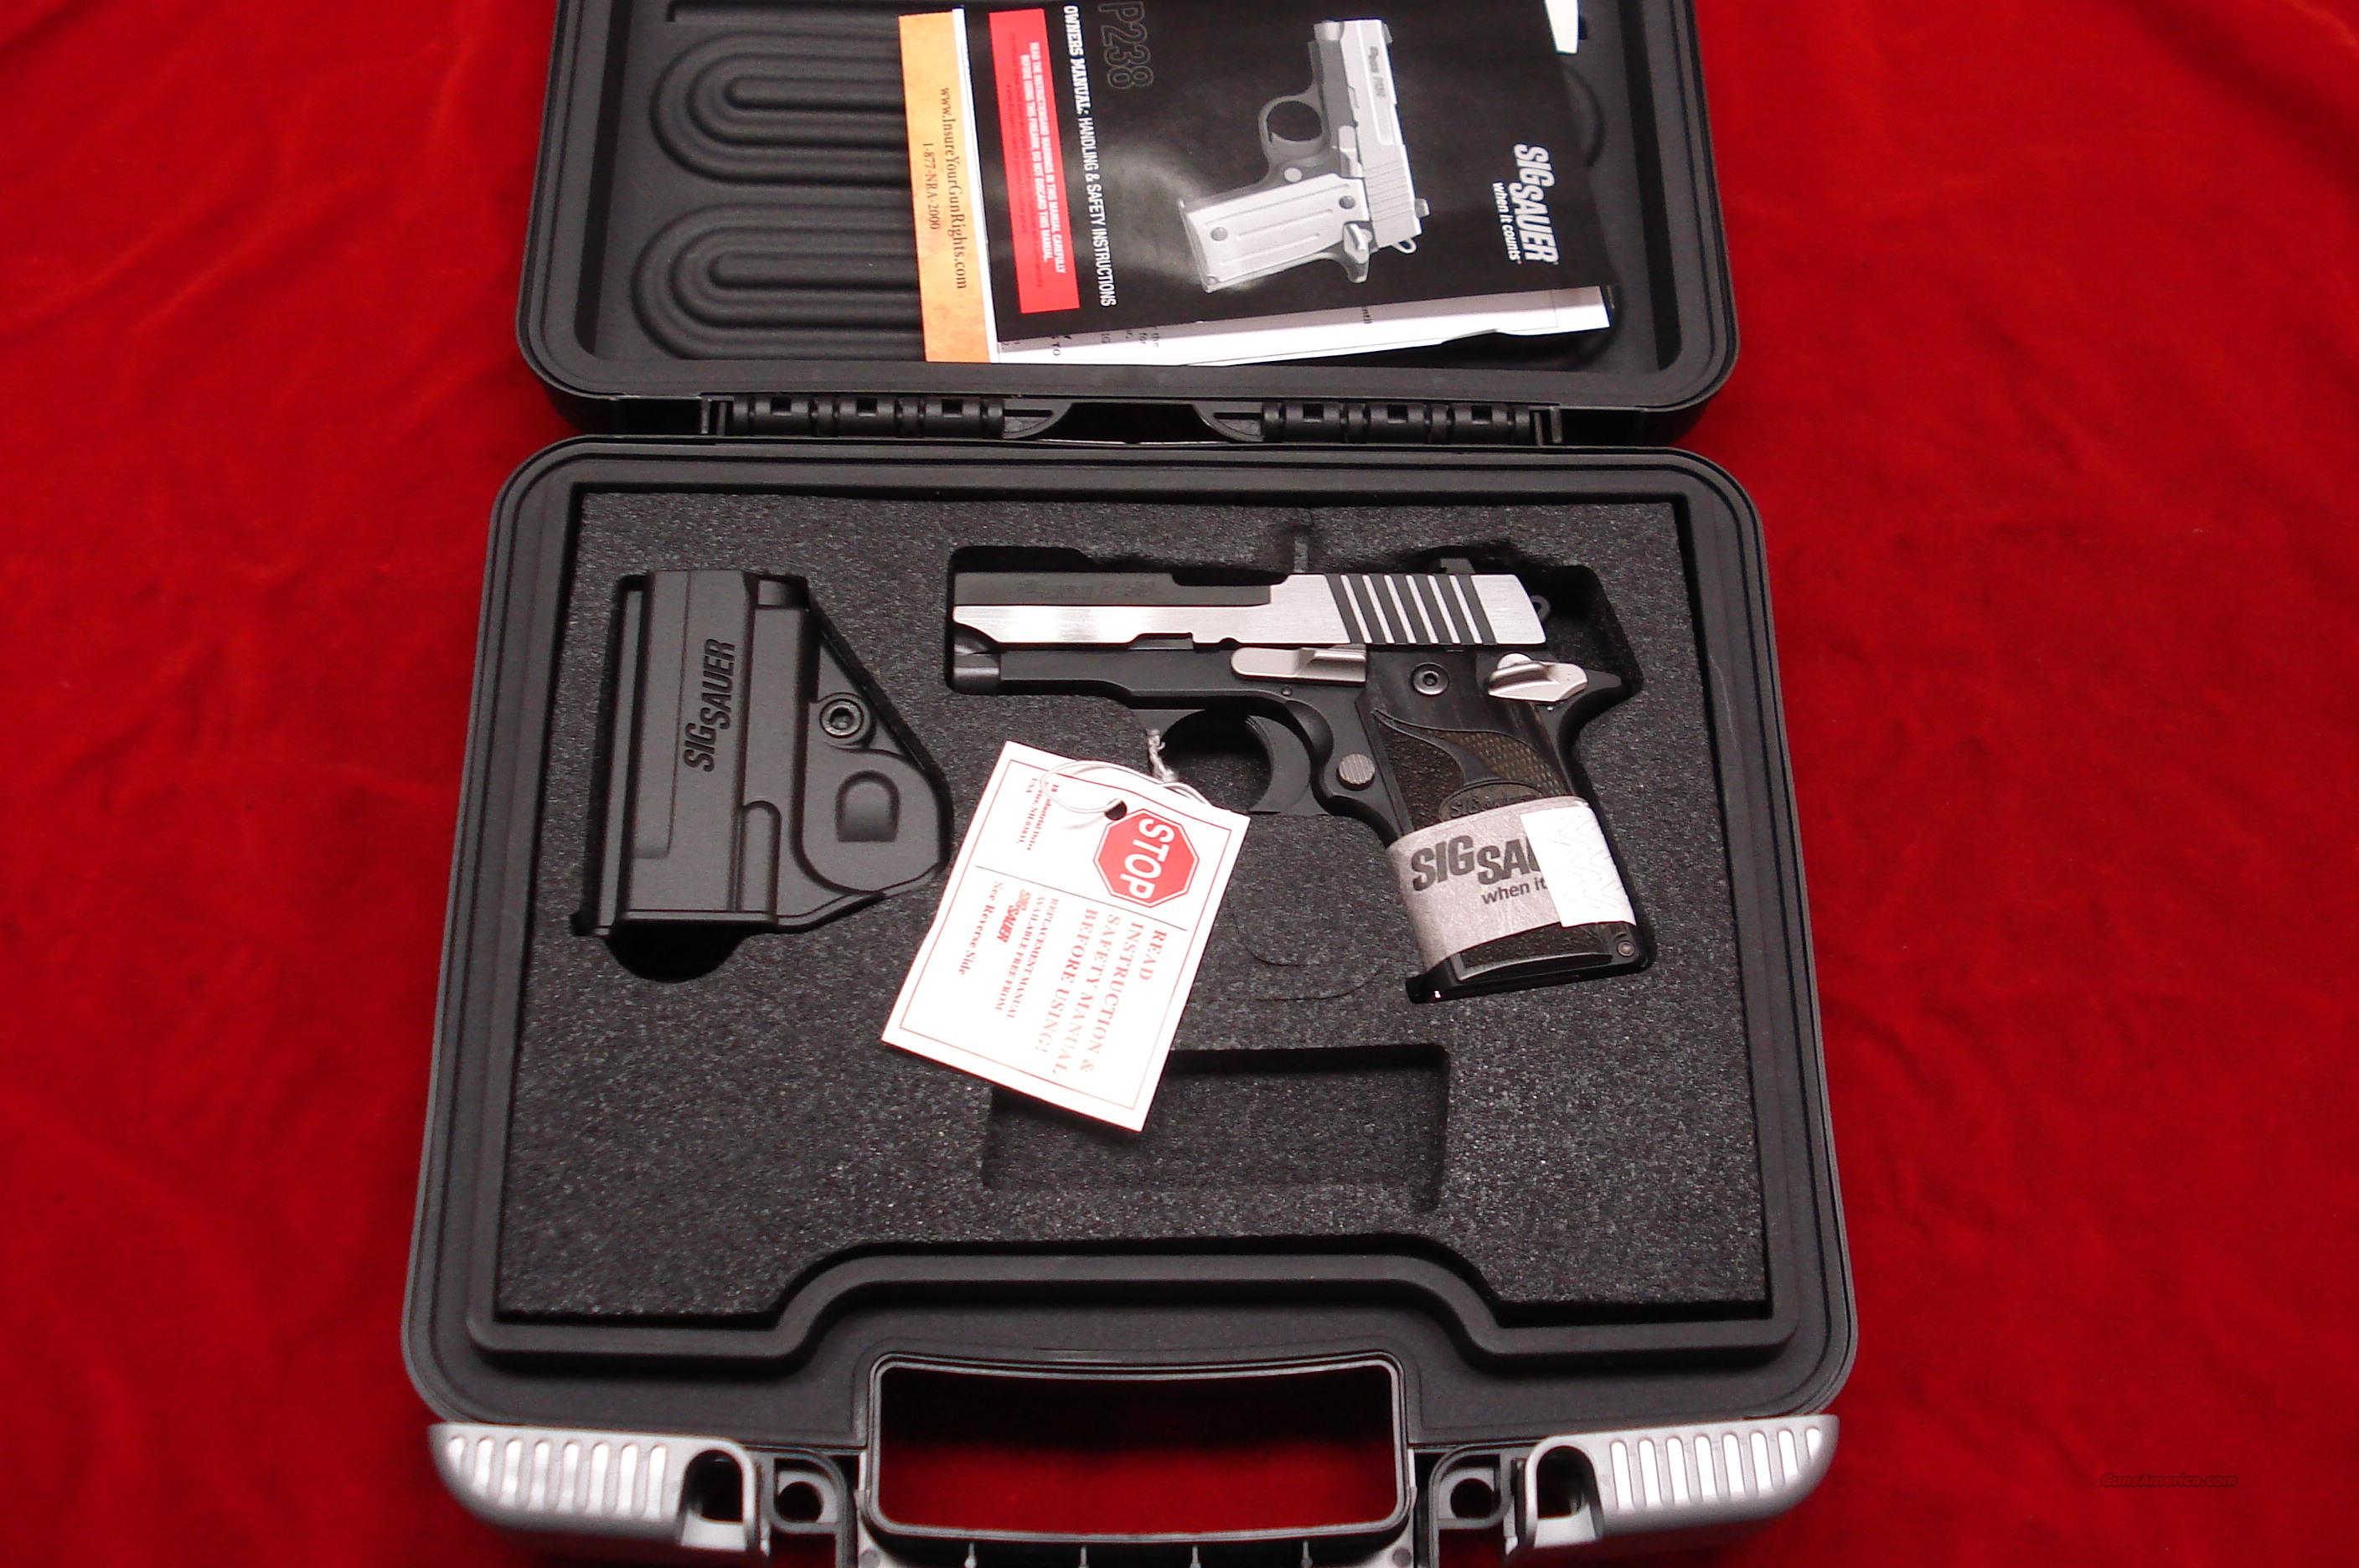 SIG SAUER P238 EQUINOX BLACKEN STAINLESS DUO-TONE 380CAL. W/NIGHT SIGHTS NEW   Guns > Pistols > Sig - Sauer/Sigarms Pistols > Other